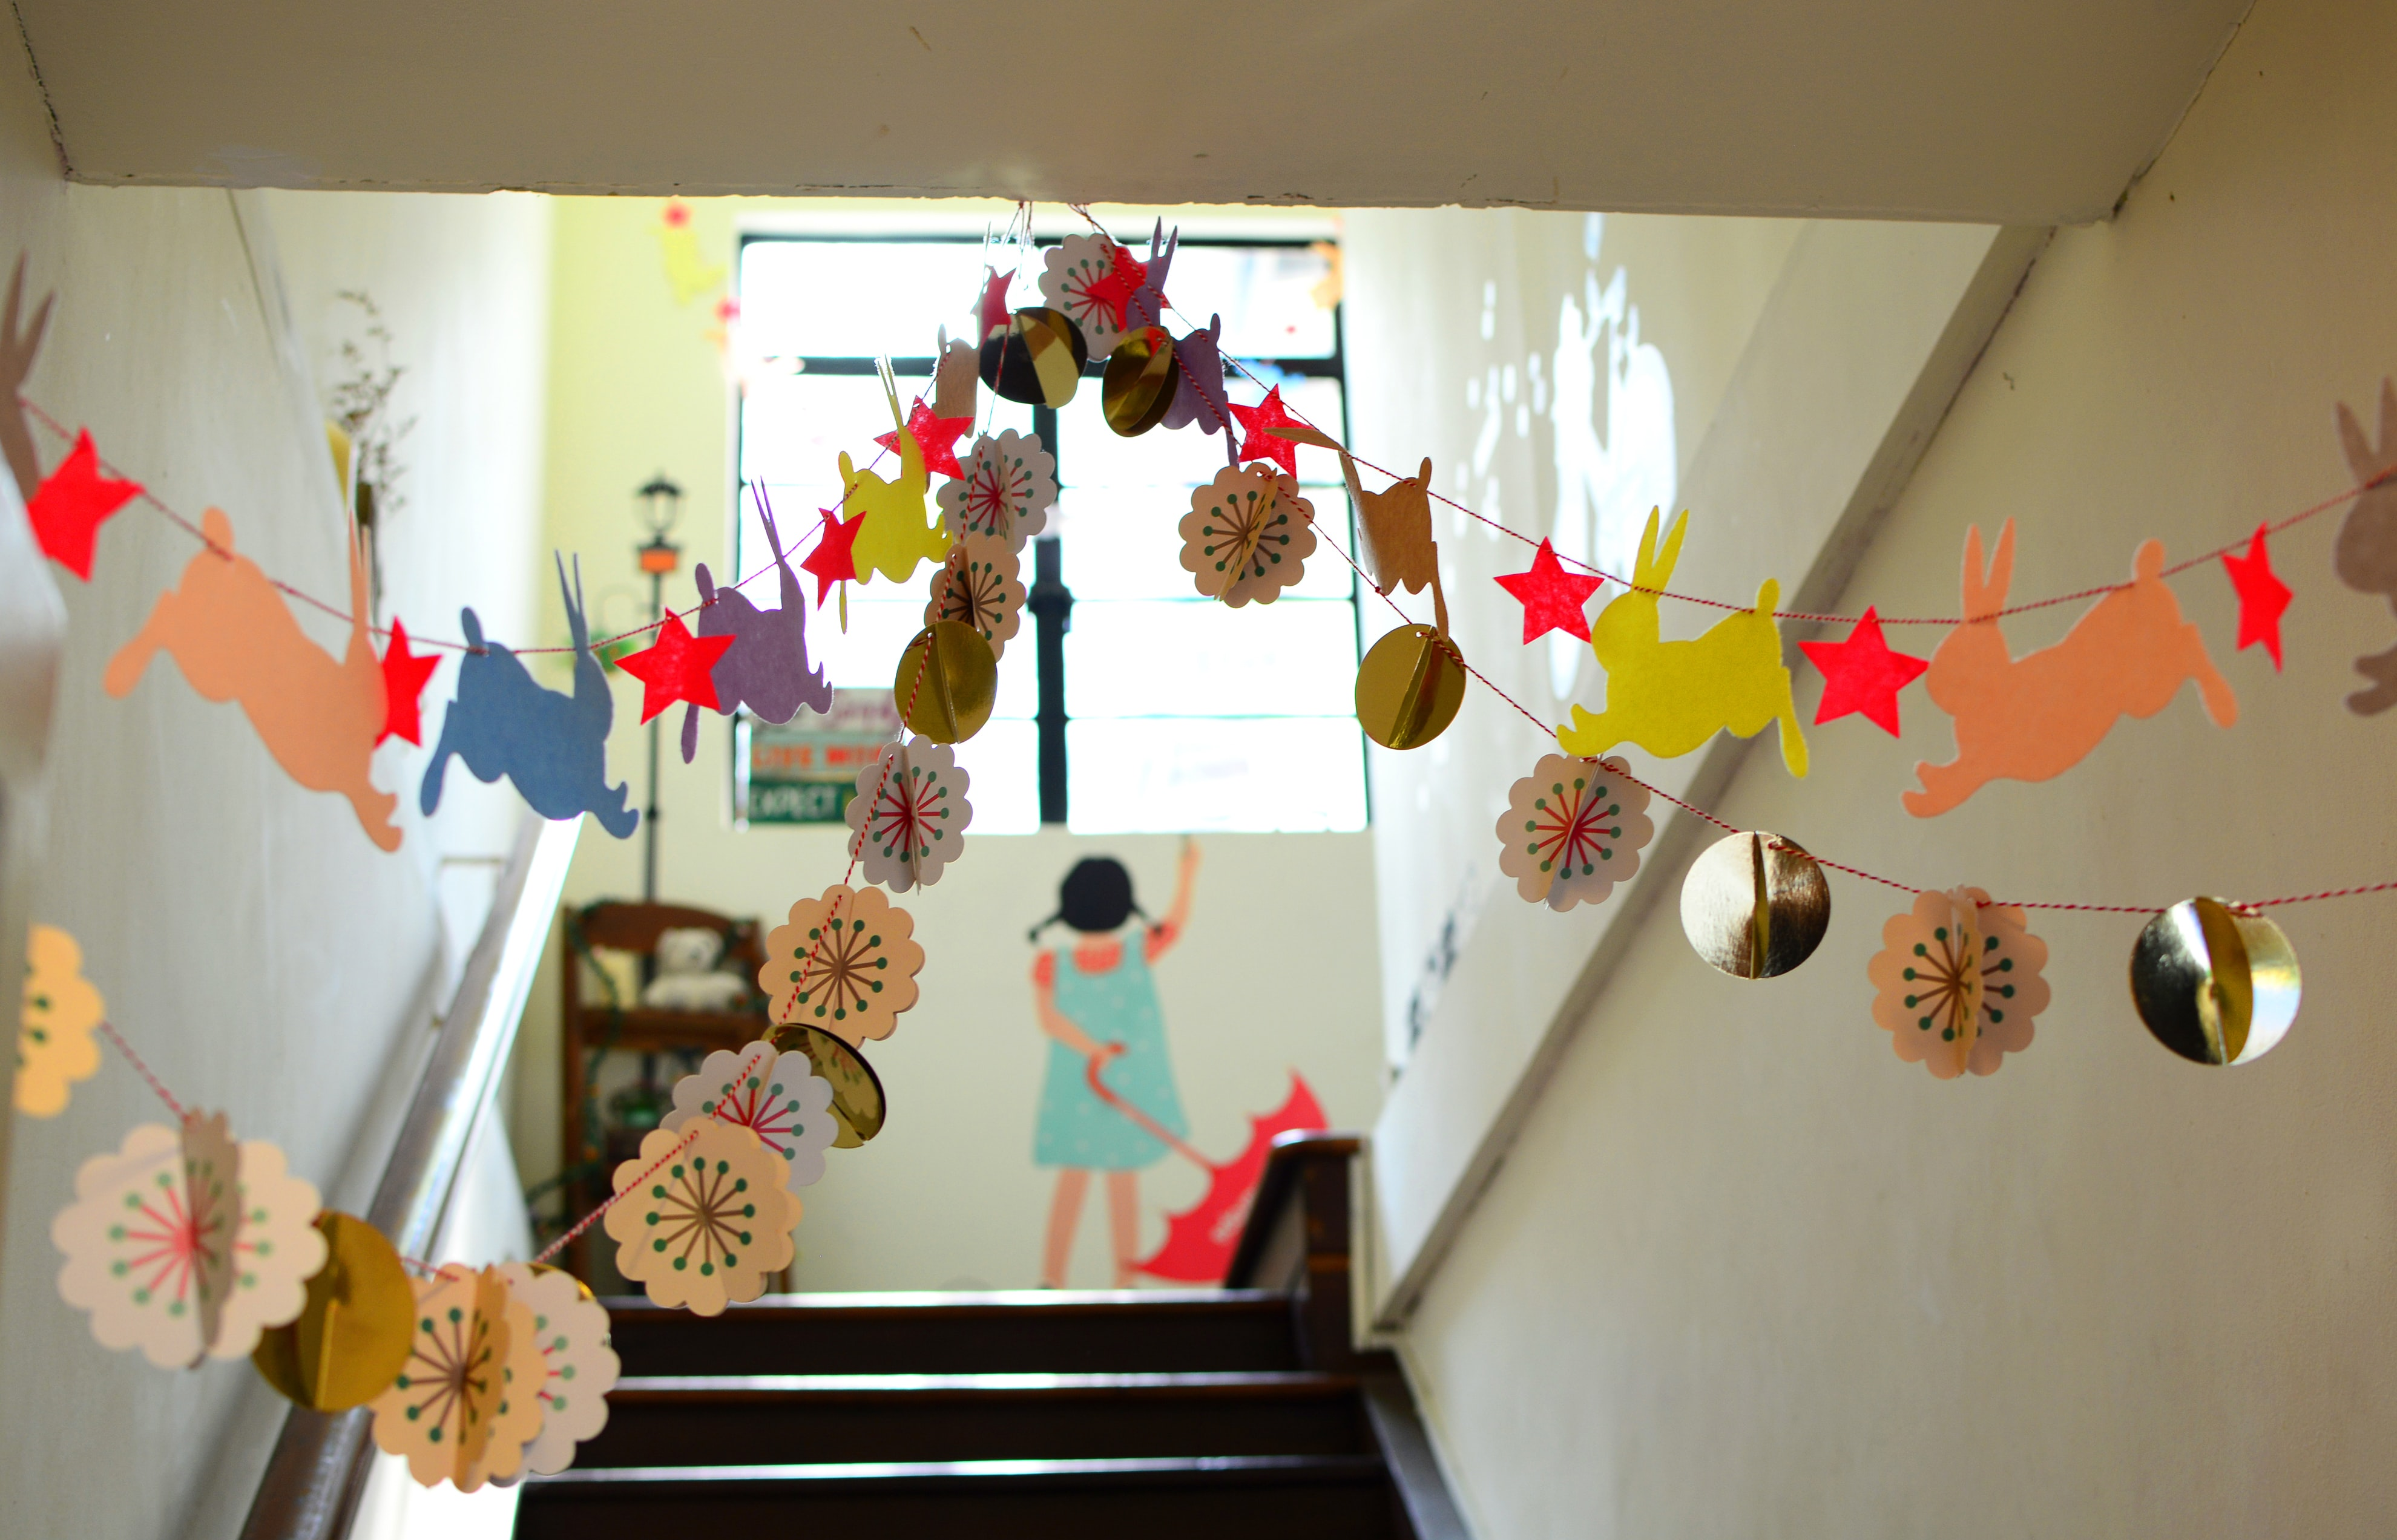 A school hallway decorated with bunnies, stars, and polka dots with a girl holding an umbrella painted on the wall in Singapore